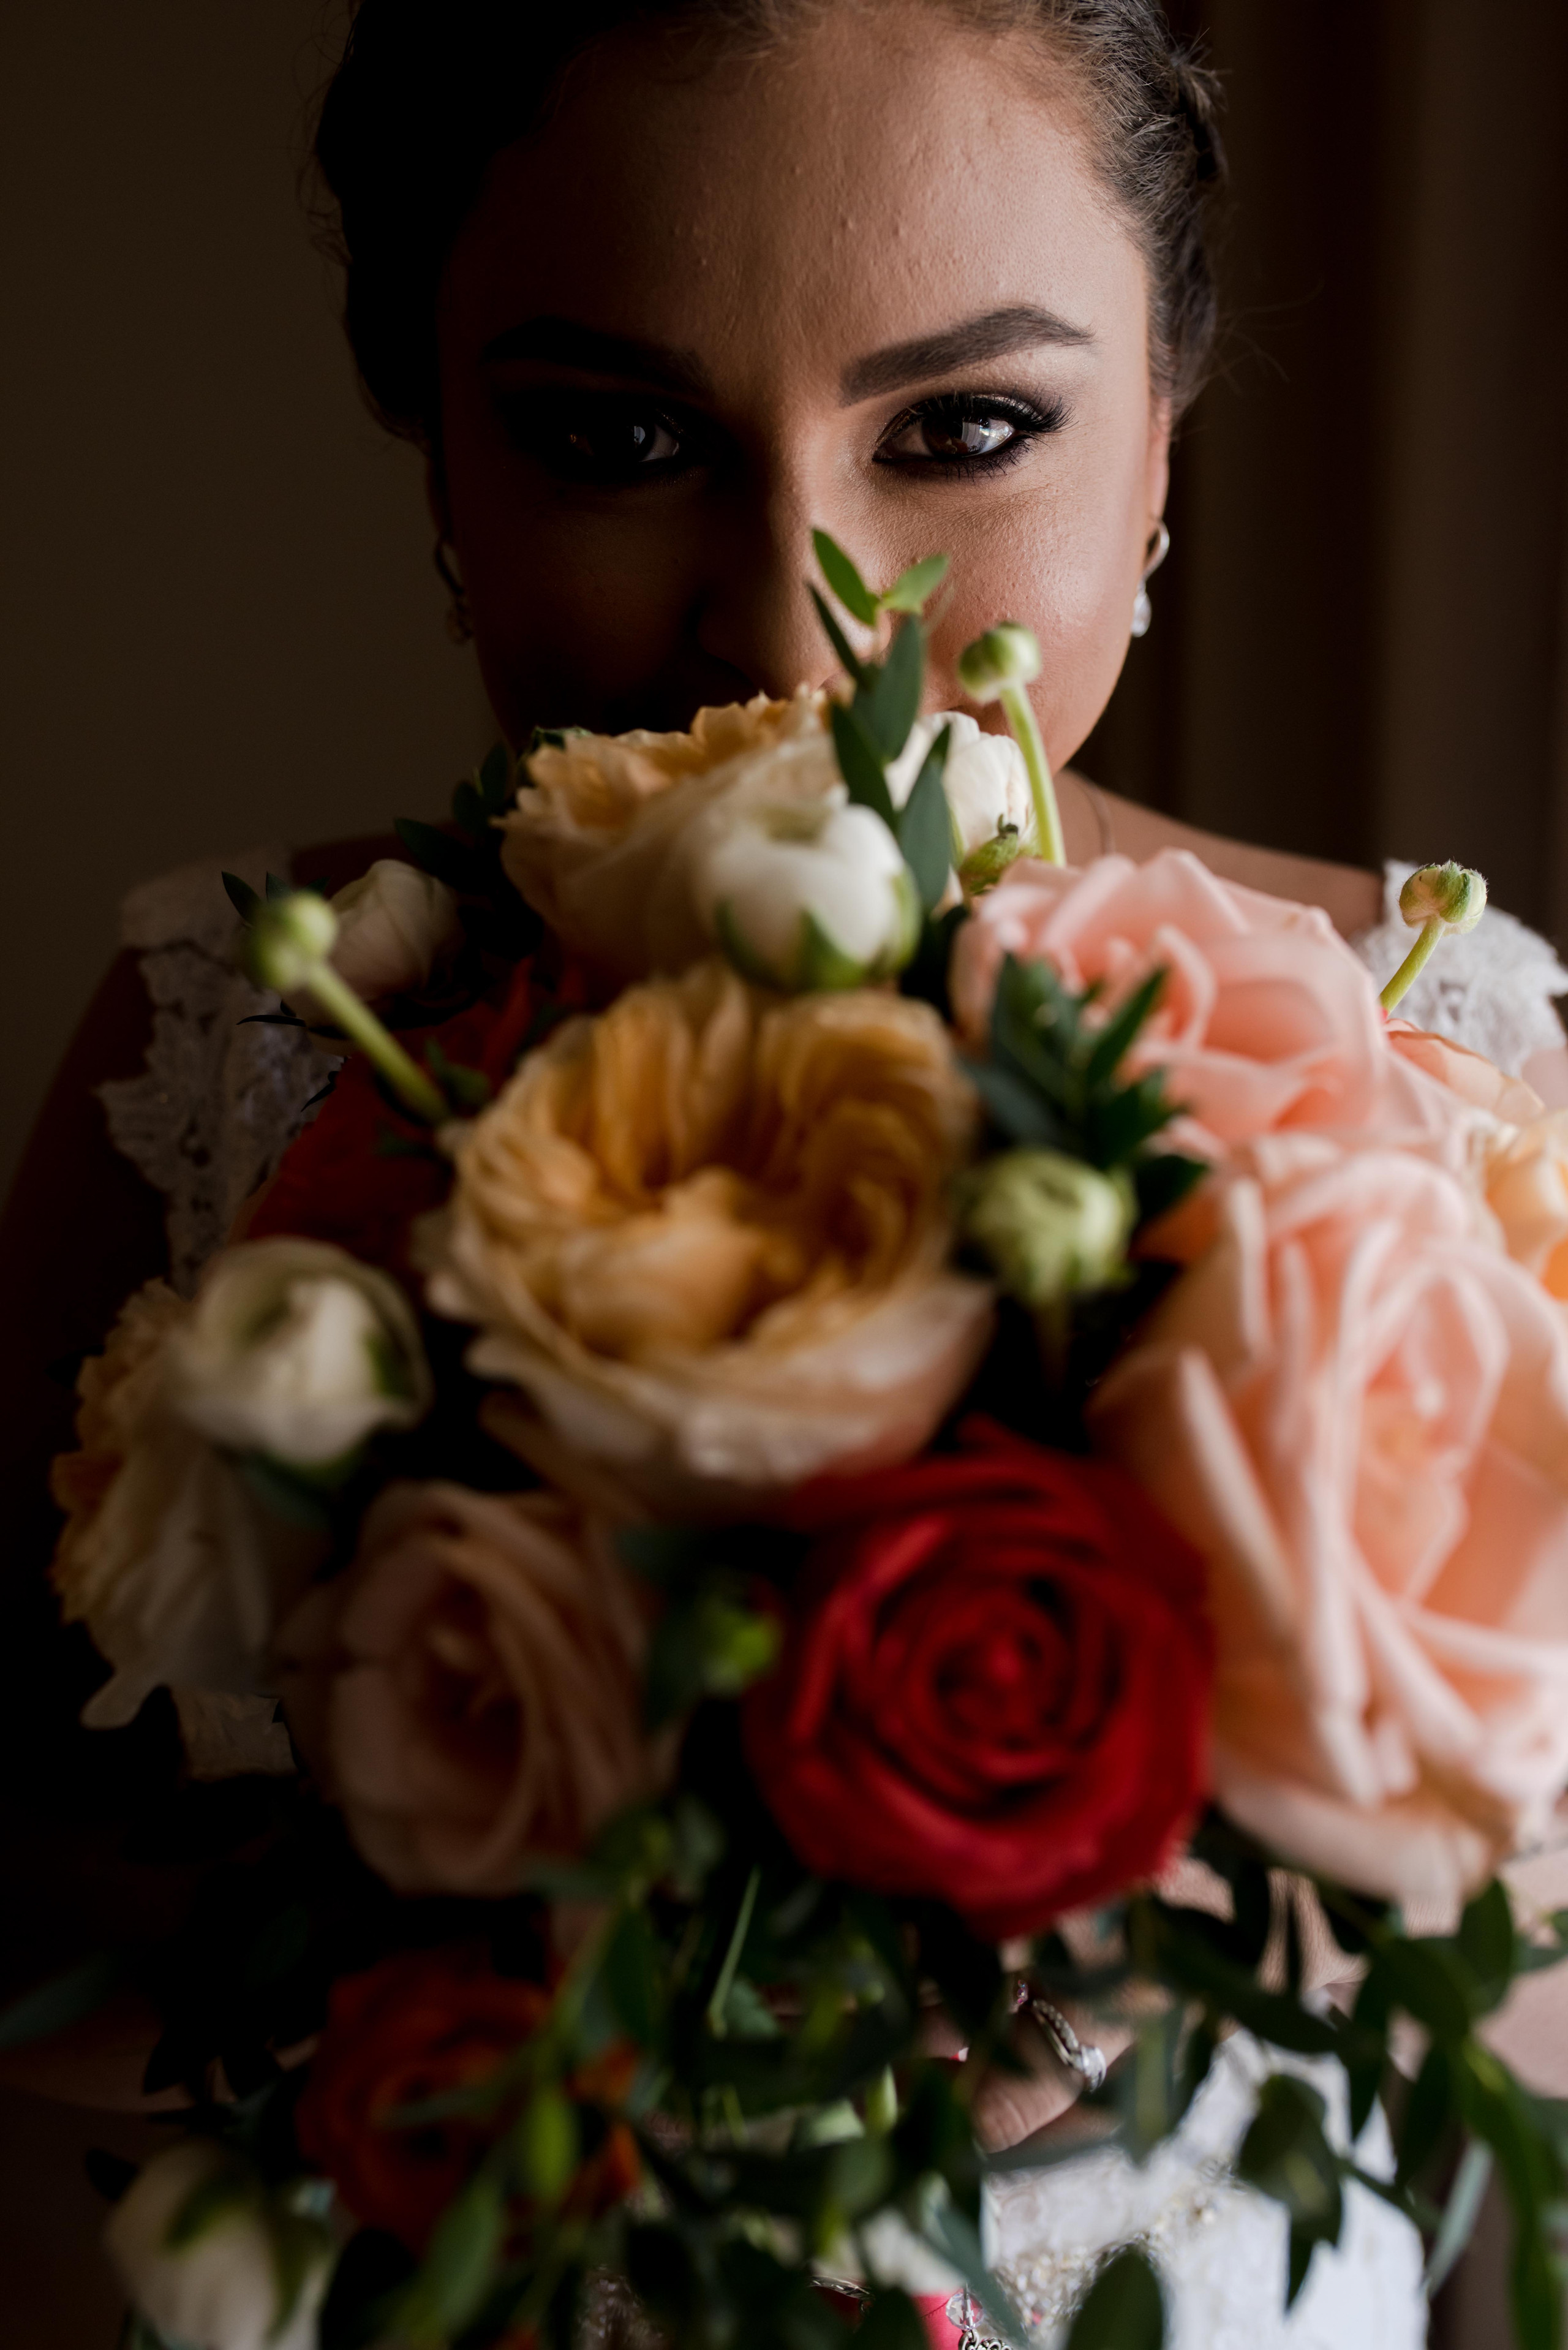 bride+bouquet+flowers+eyes